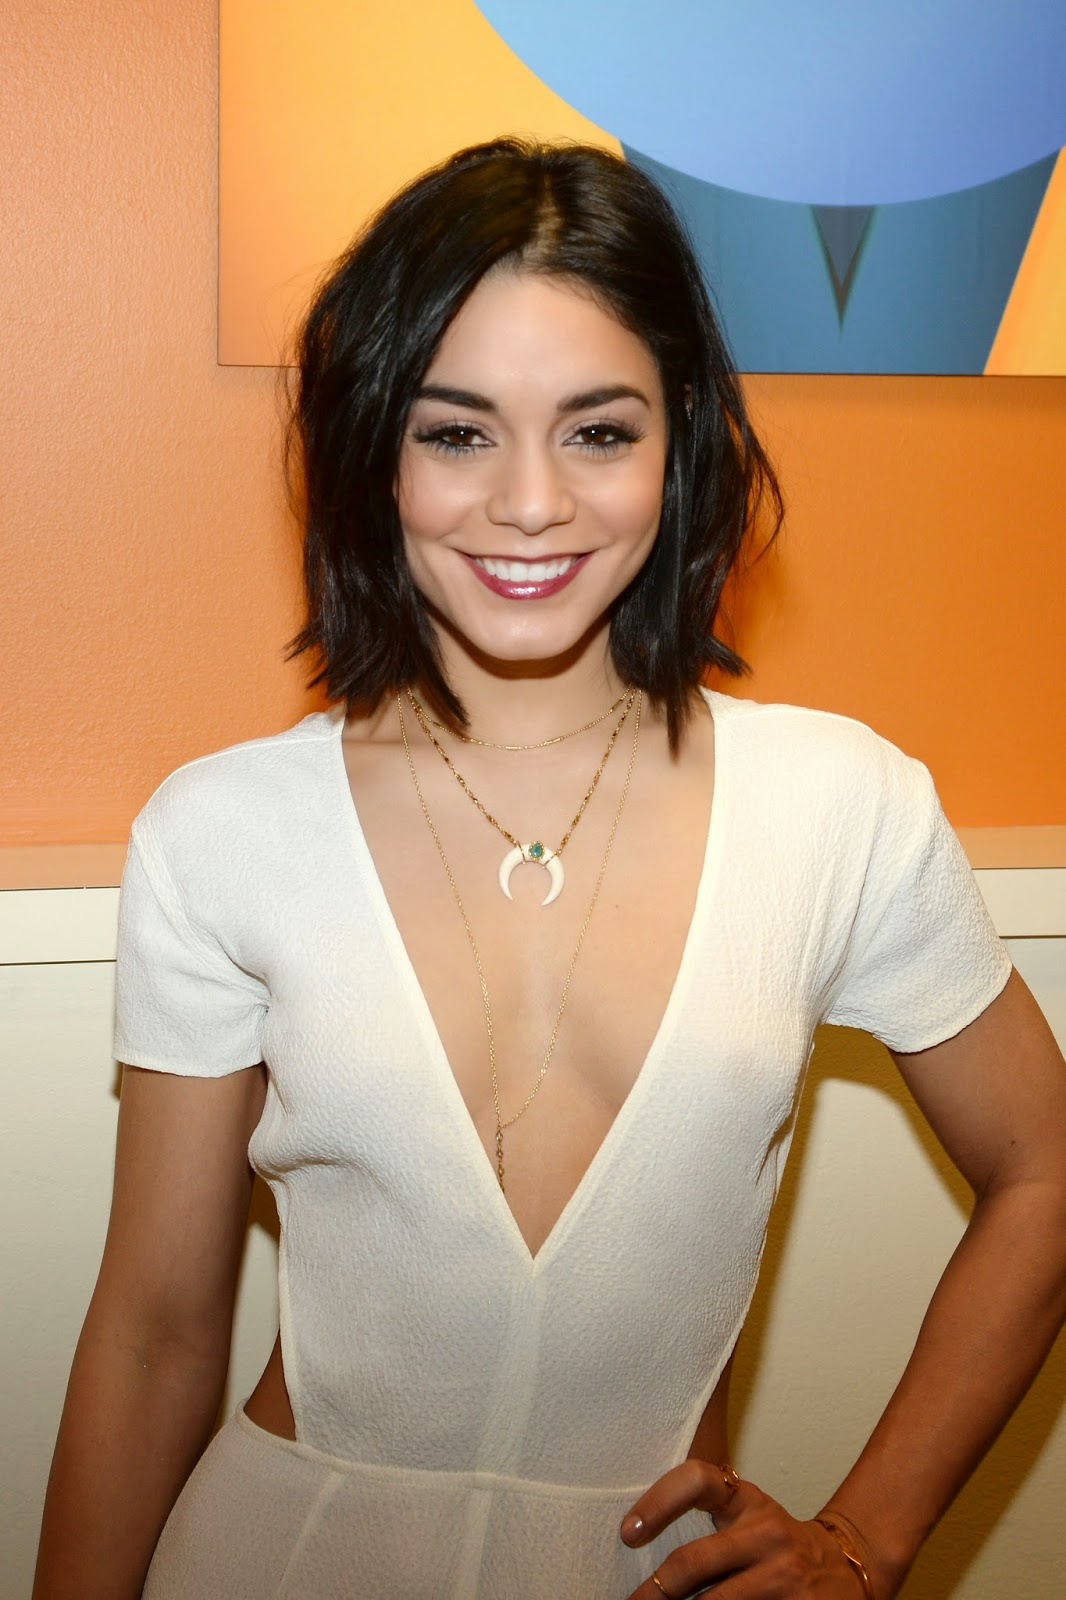 Vanessa Hudgens in hot plunging outfit